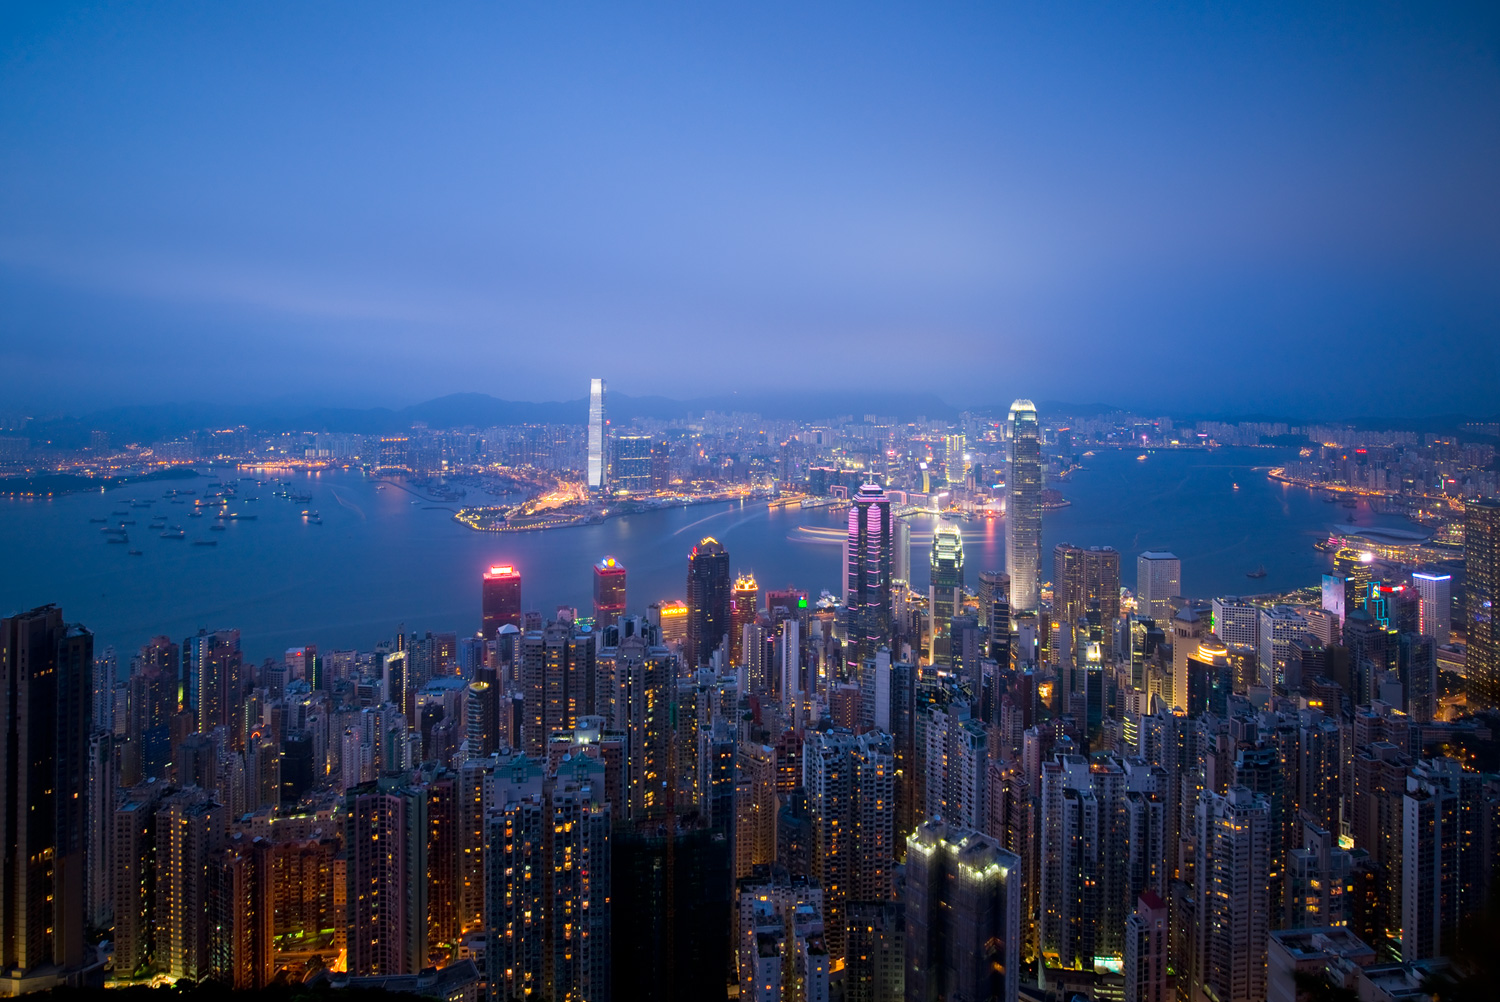 Hk 0106 - How to Search Potential Cityscape Photography Spots Online Before Traveling